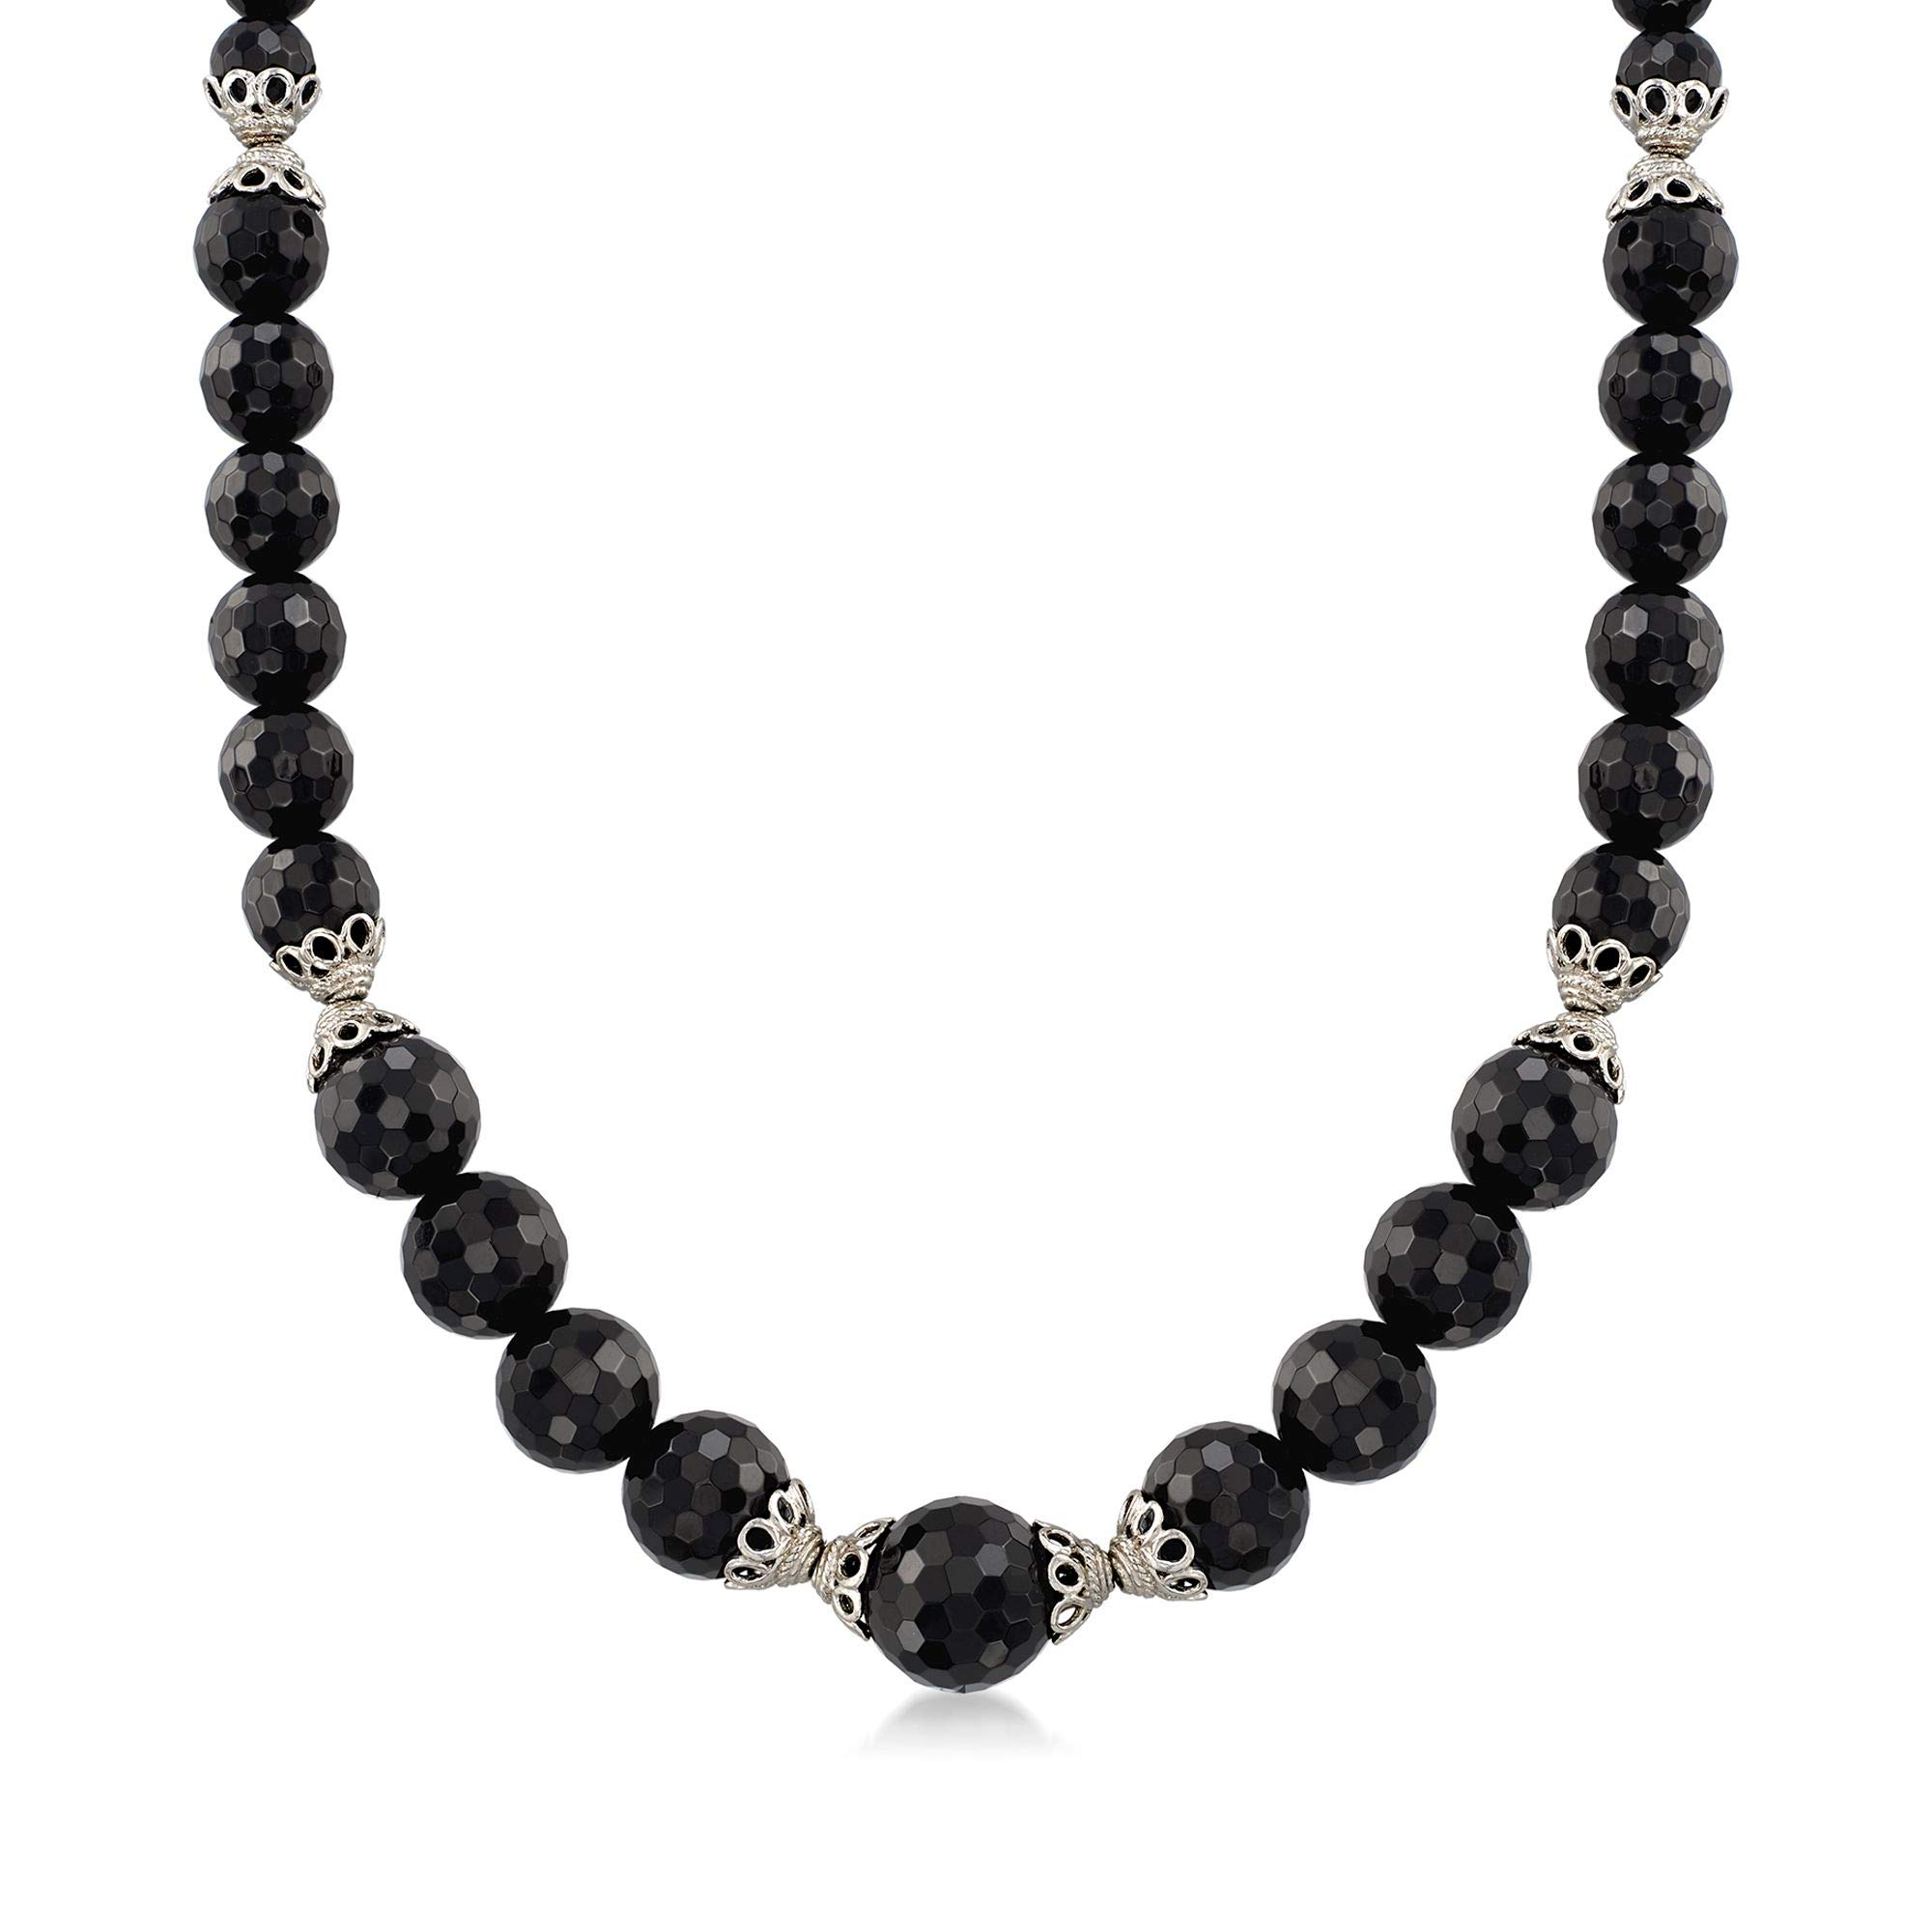 Ross-Simons Graduated Black Onyx Bead Necklace With Sterling Silver Lacy Cap Stations by Ross-Simons